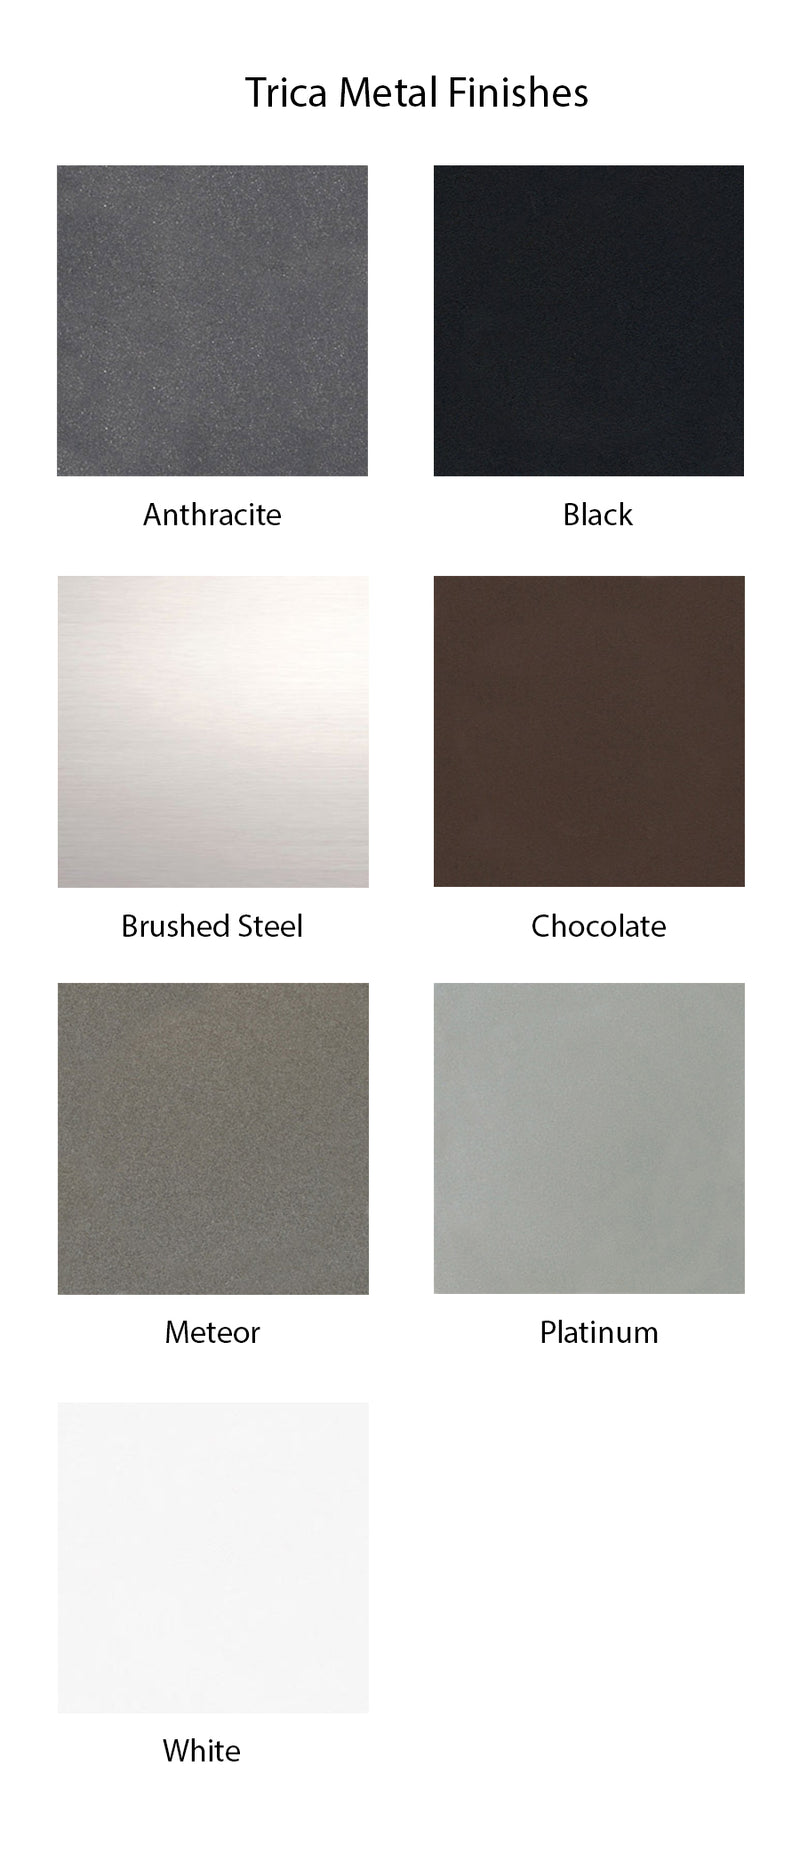 products/metal-finishes-trica_c329c728-7978-41f8-8b9e-d91ffa4d492b.jpg